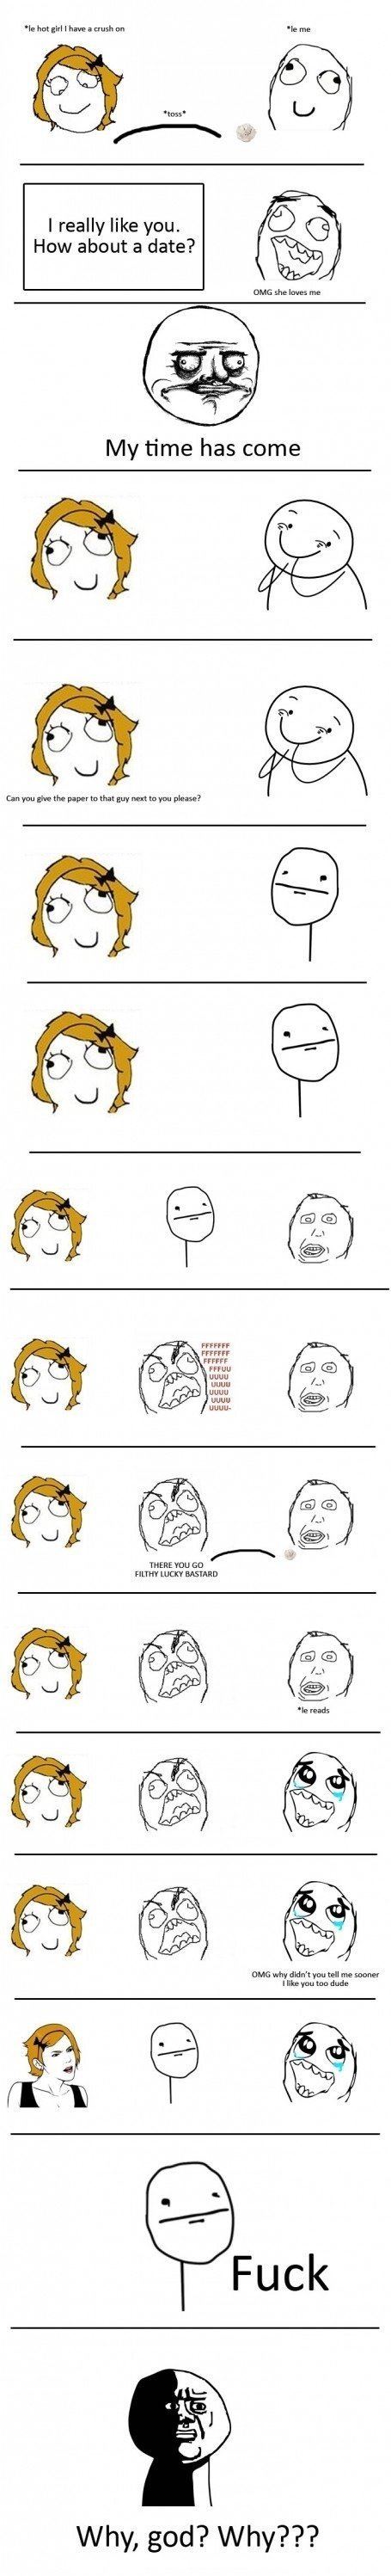 funny pictures auto rage comics god why